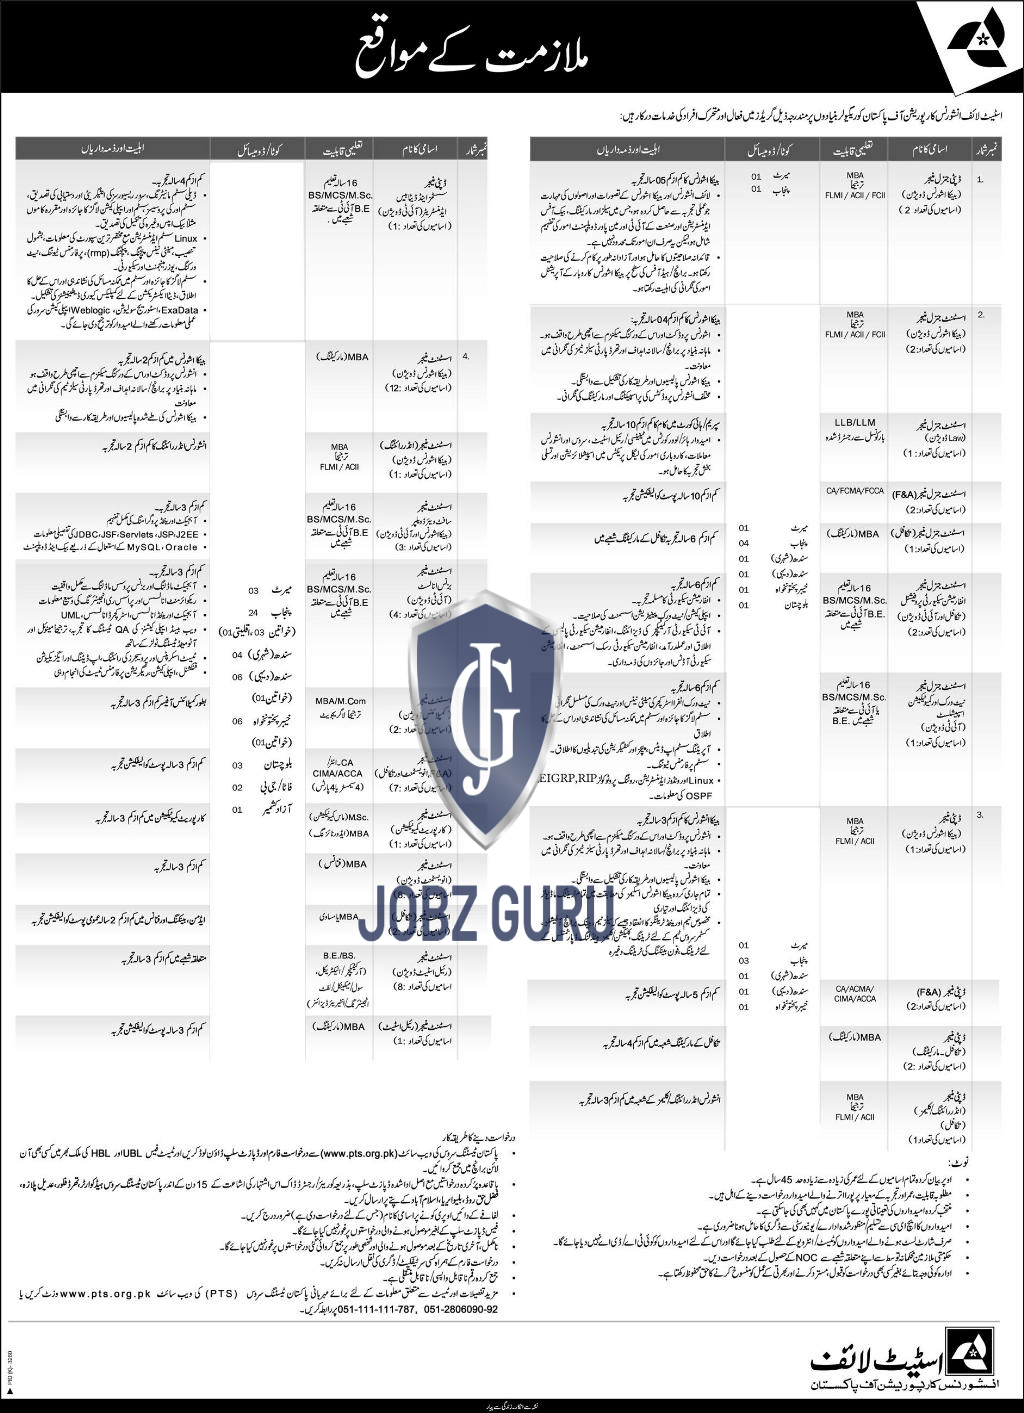 State Life Insurance Corporation Of Pakistan Jobs 2019  in All over in Pakistan on February, 2019 | Private